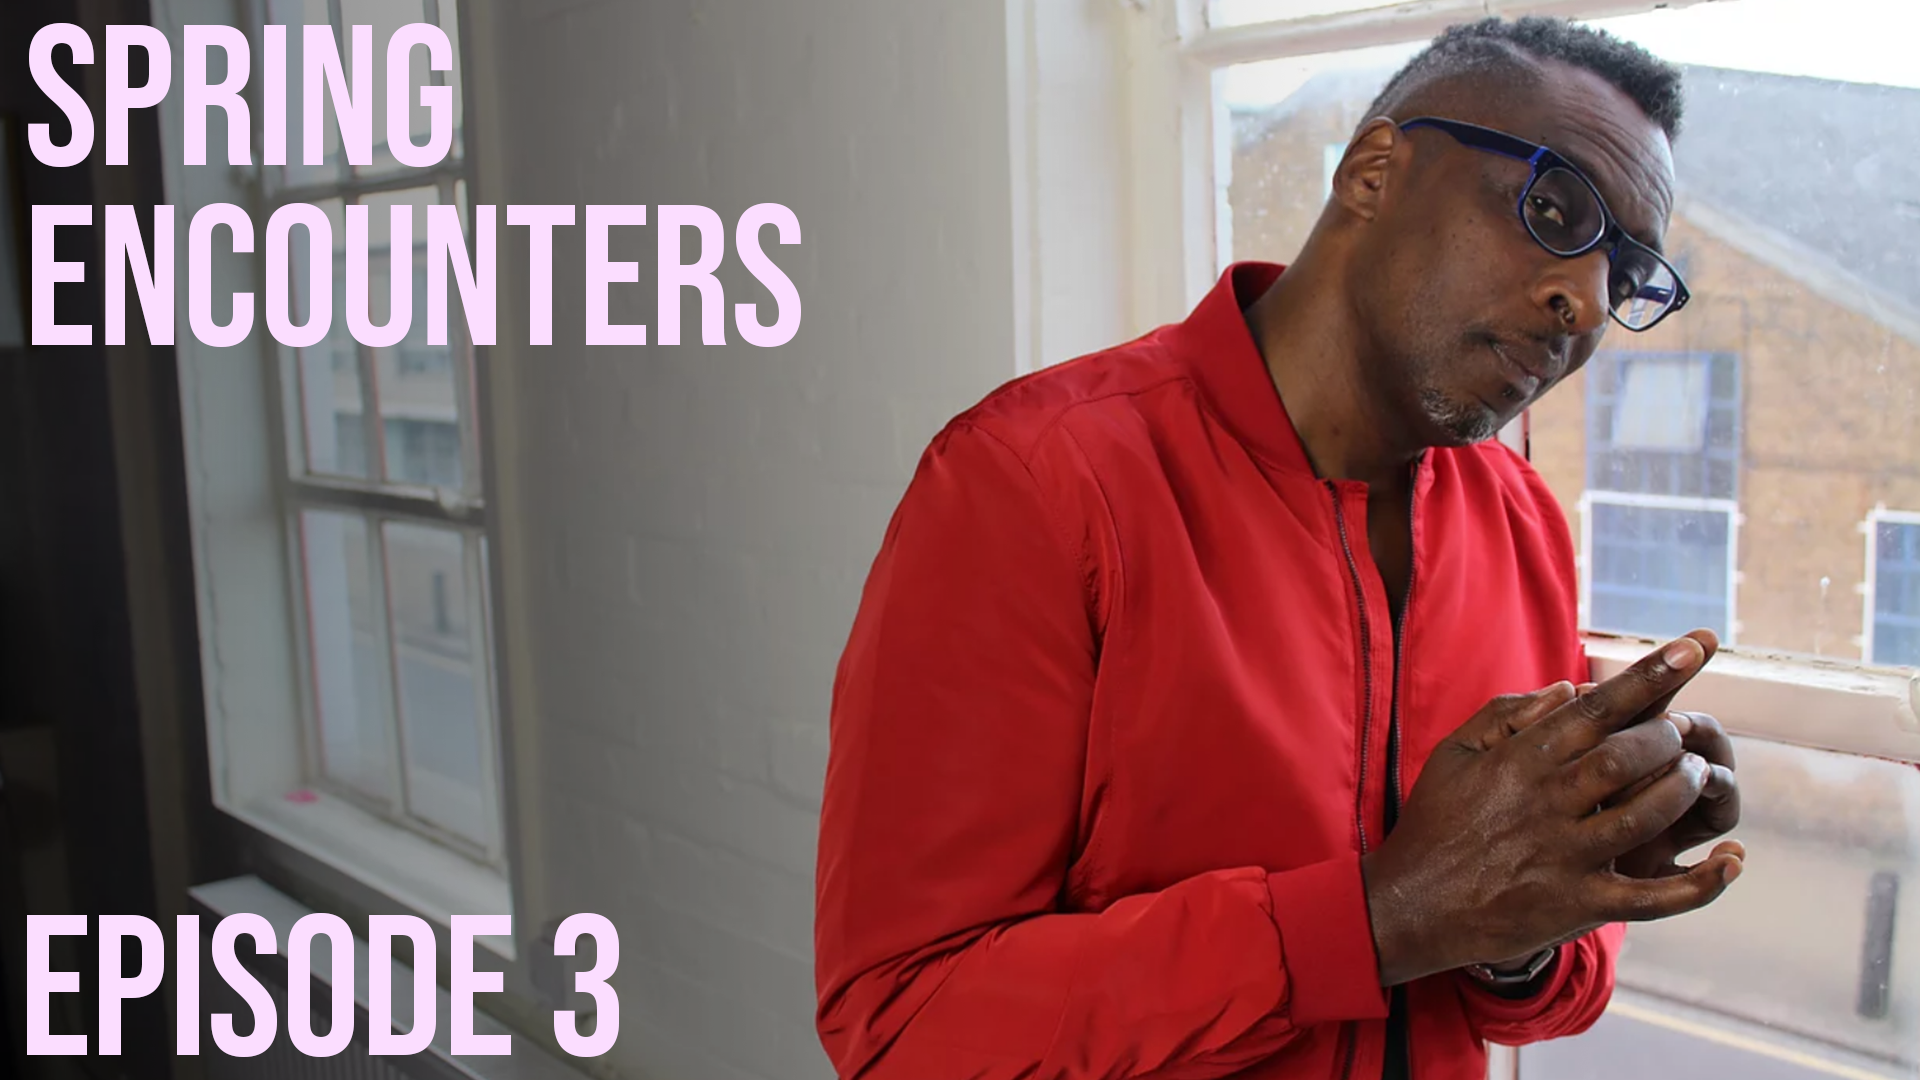 Photo for Spring Encounters: Episode 3 on ViewStub